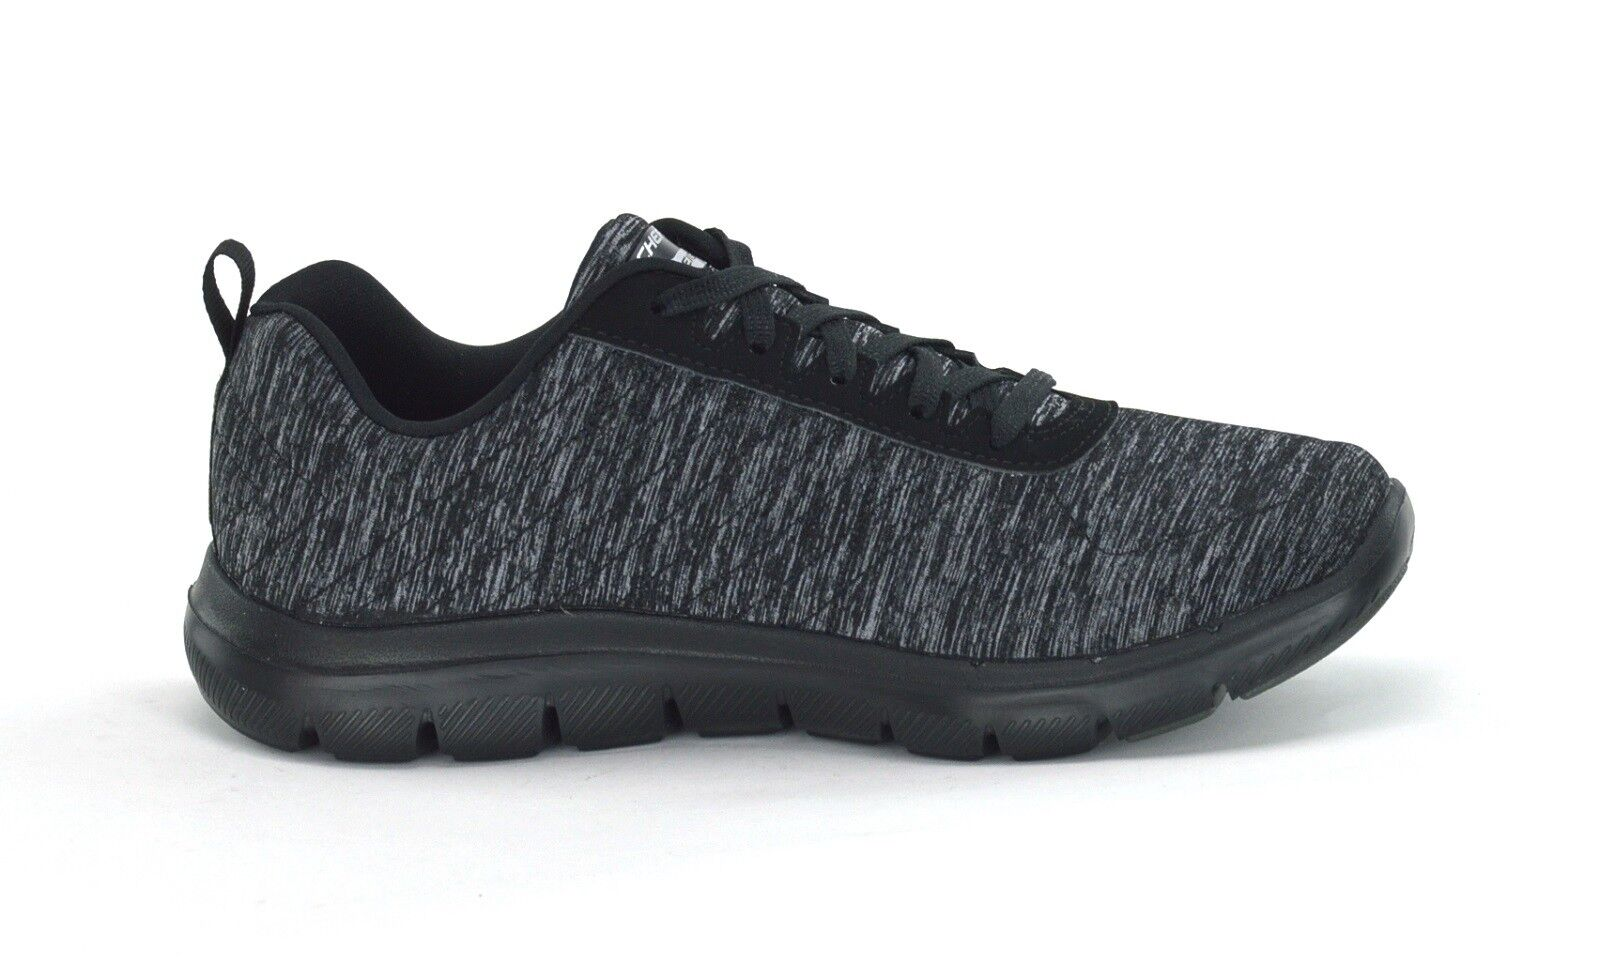 SKECHERS FLEX APPEAL 2.0 - 12753/BKCC - Damenschuhe TRAINERS - BLACK/CHAR - BRAND NEW